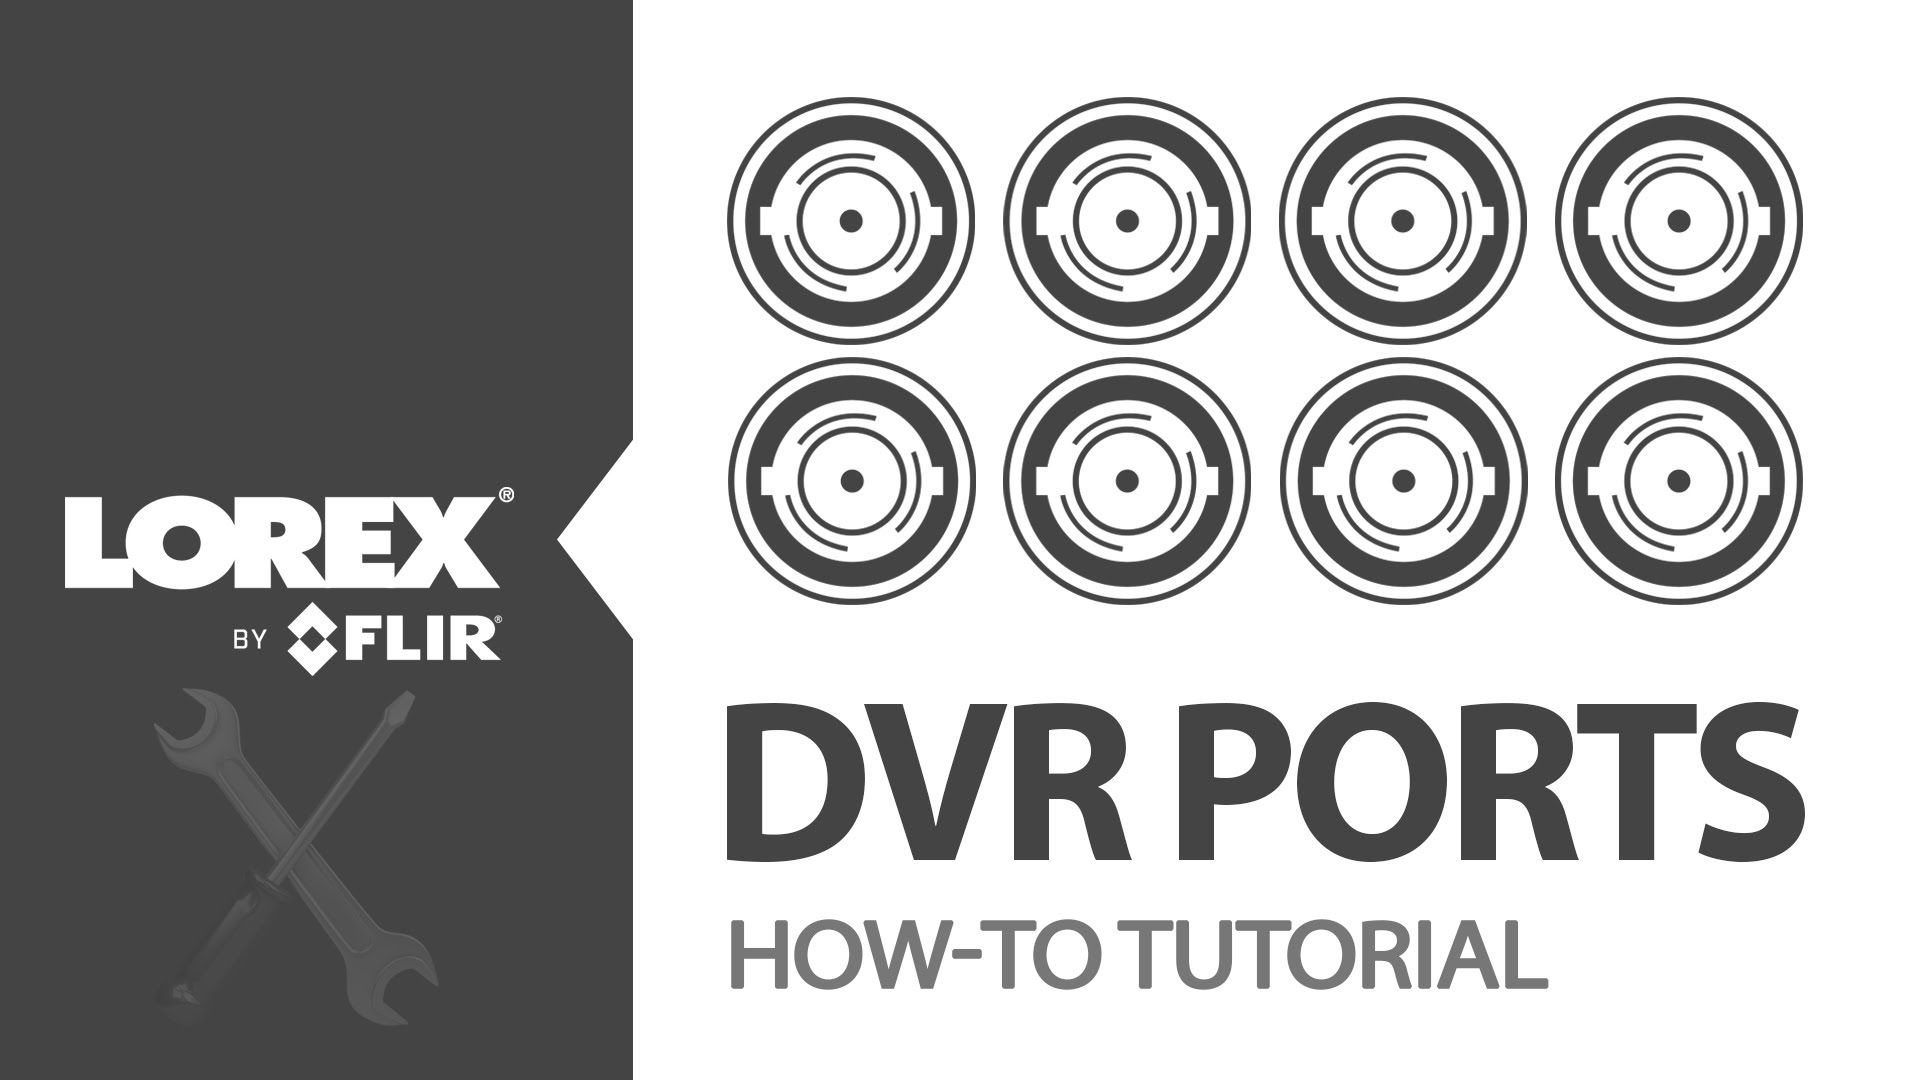 How-To Tutorial on Lorex Security DVR Ports | VIDEO AND QUOTES